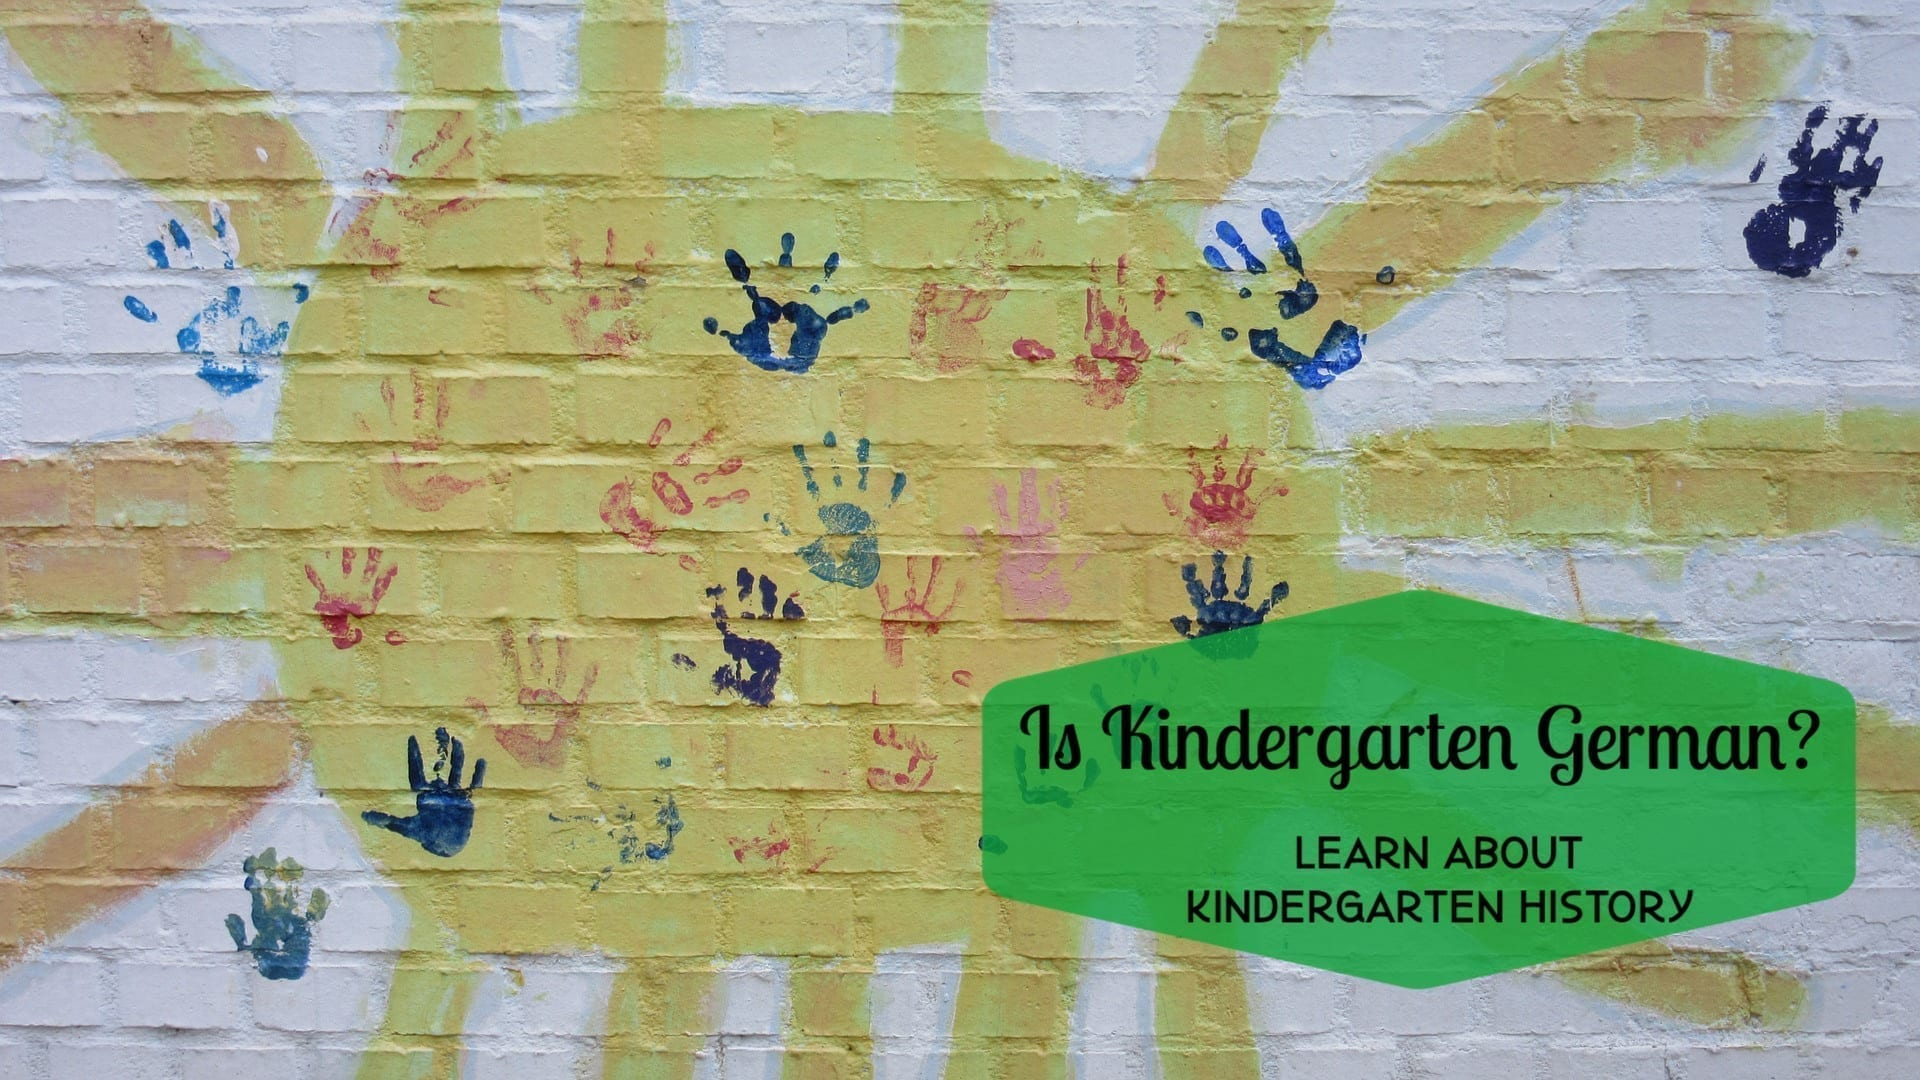 Is Kindergarten German? Learn all about Kindergarten History!